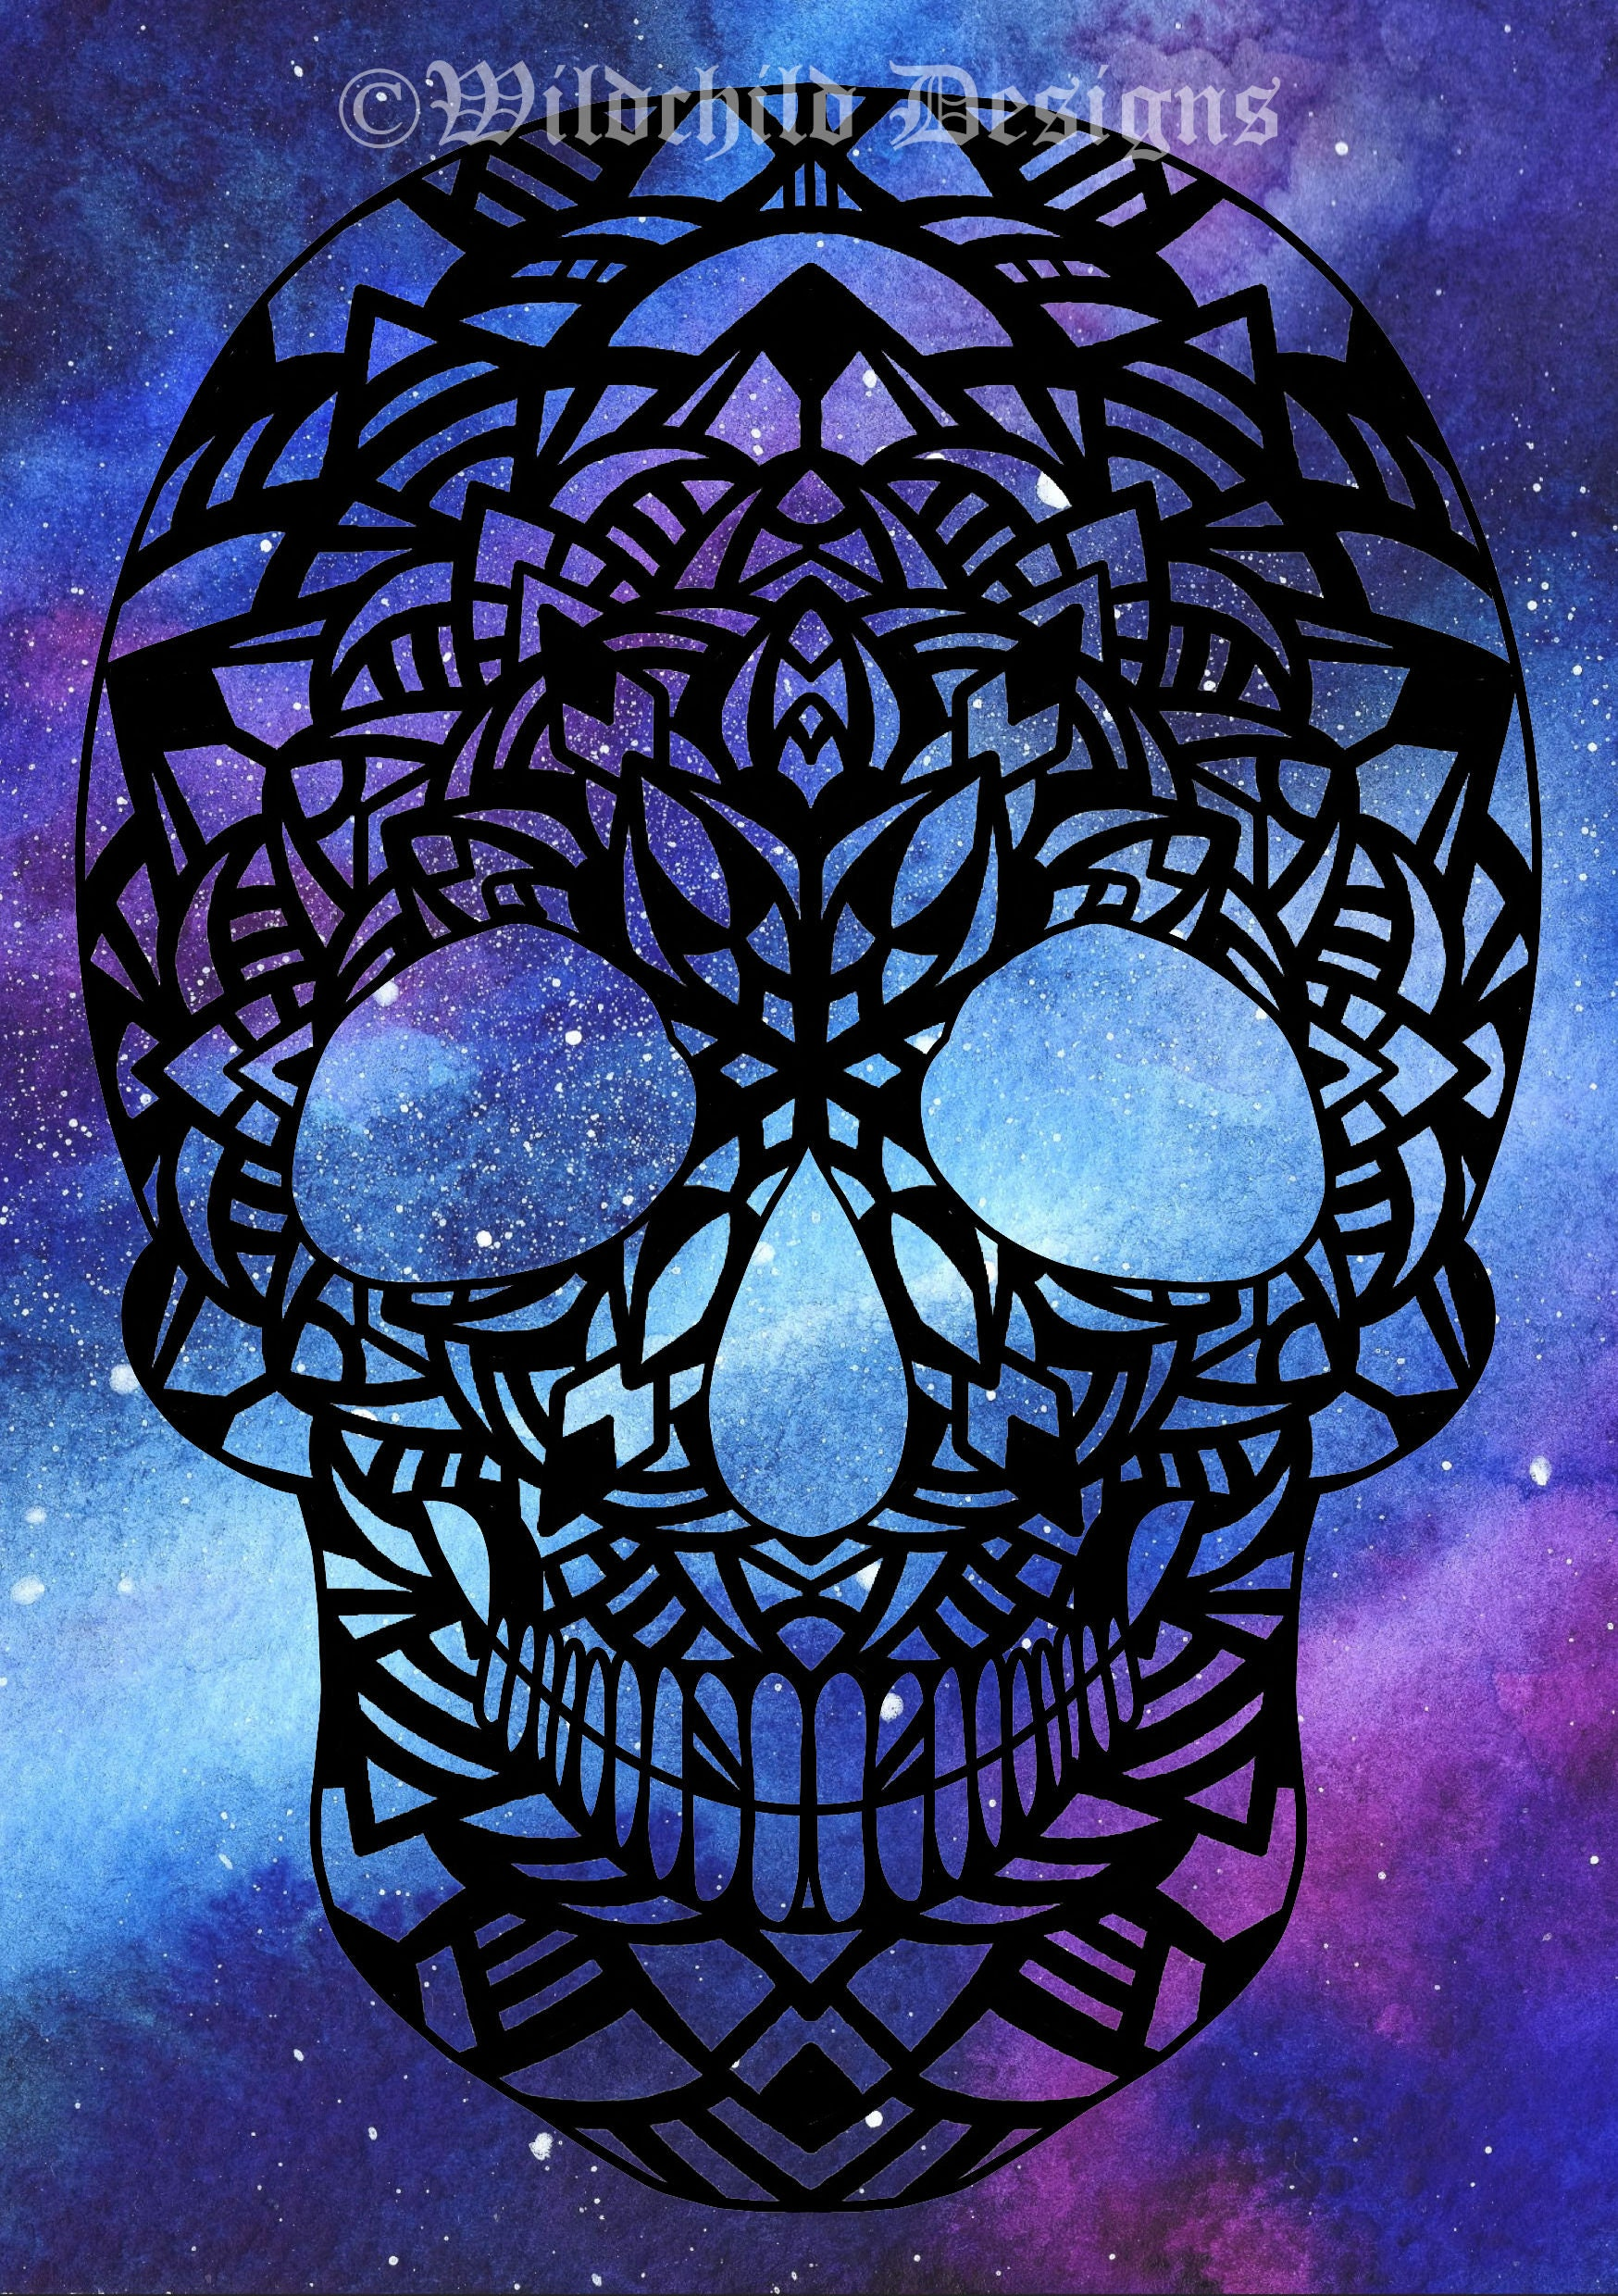 Gothic Skull With Mandala Pattern Paper Cutting Template